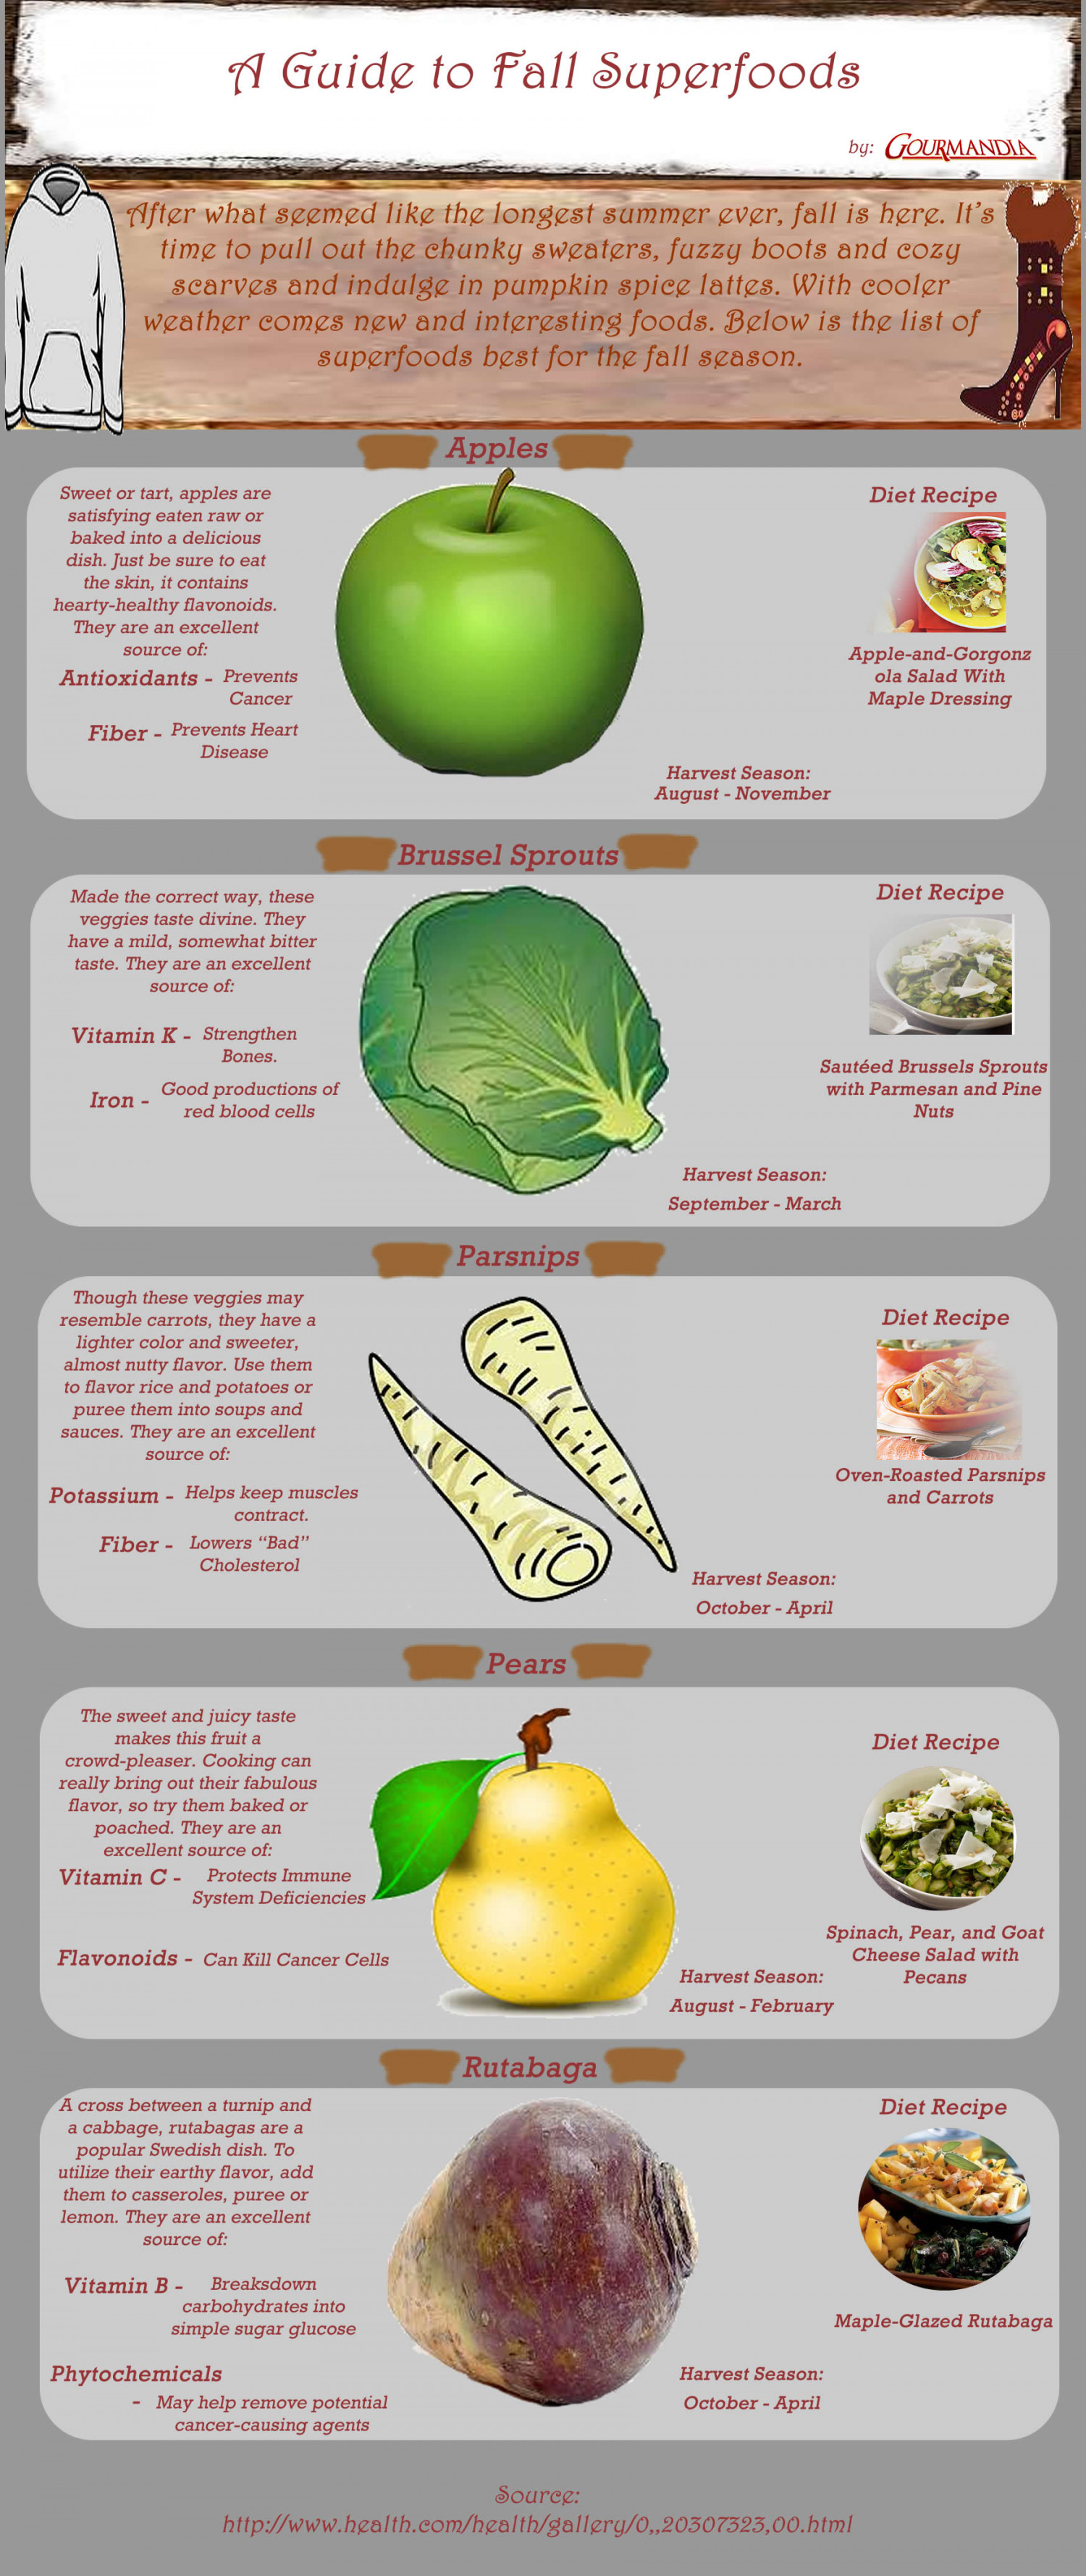 A Guide to Fall Superfoods Infographic